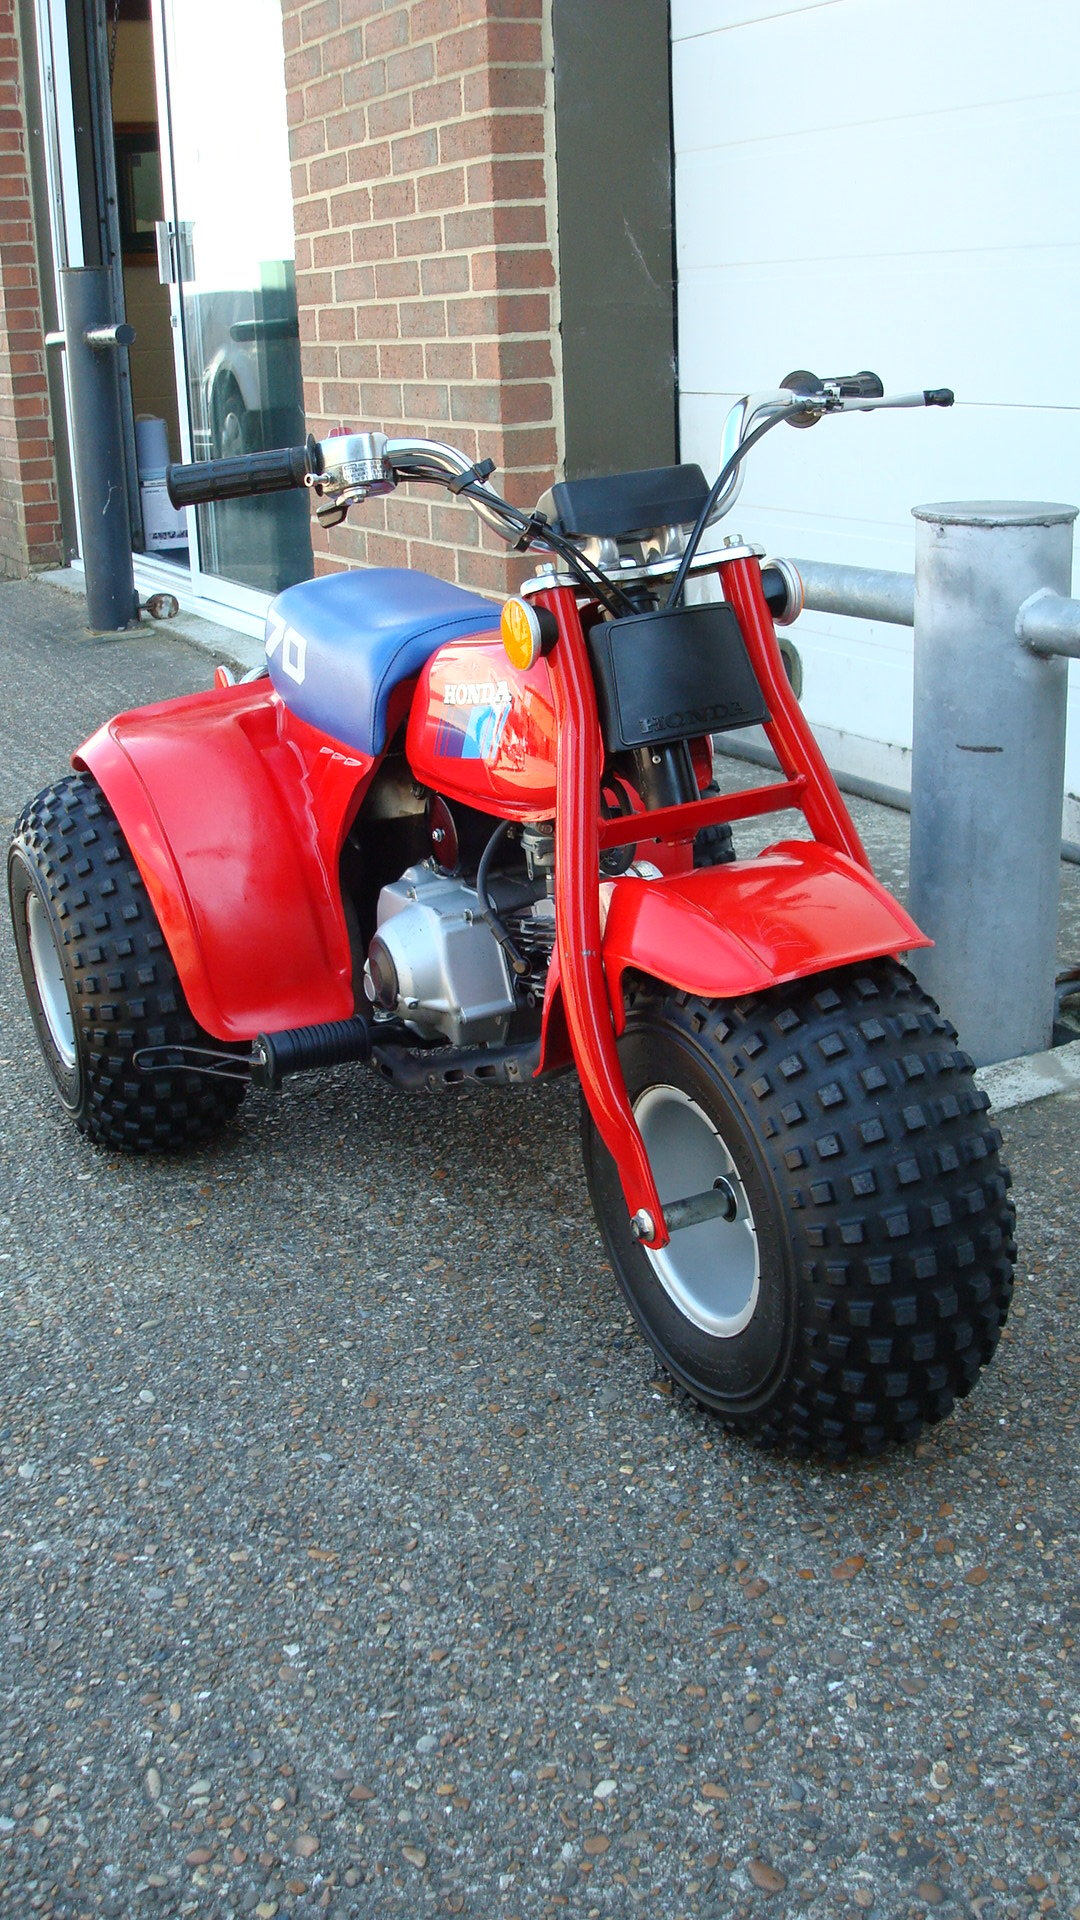 Honda ATC 70 ALL TERRAIN CYCLE 1985 **UN-RESTORED** SOLD (picture 2 of 6)